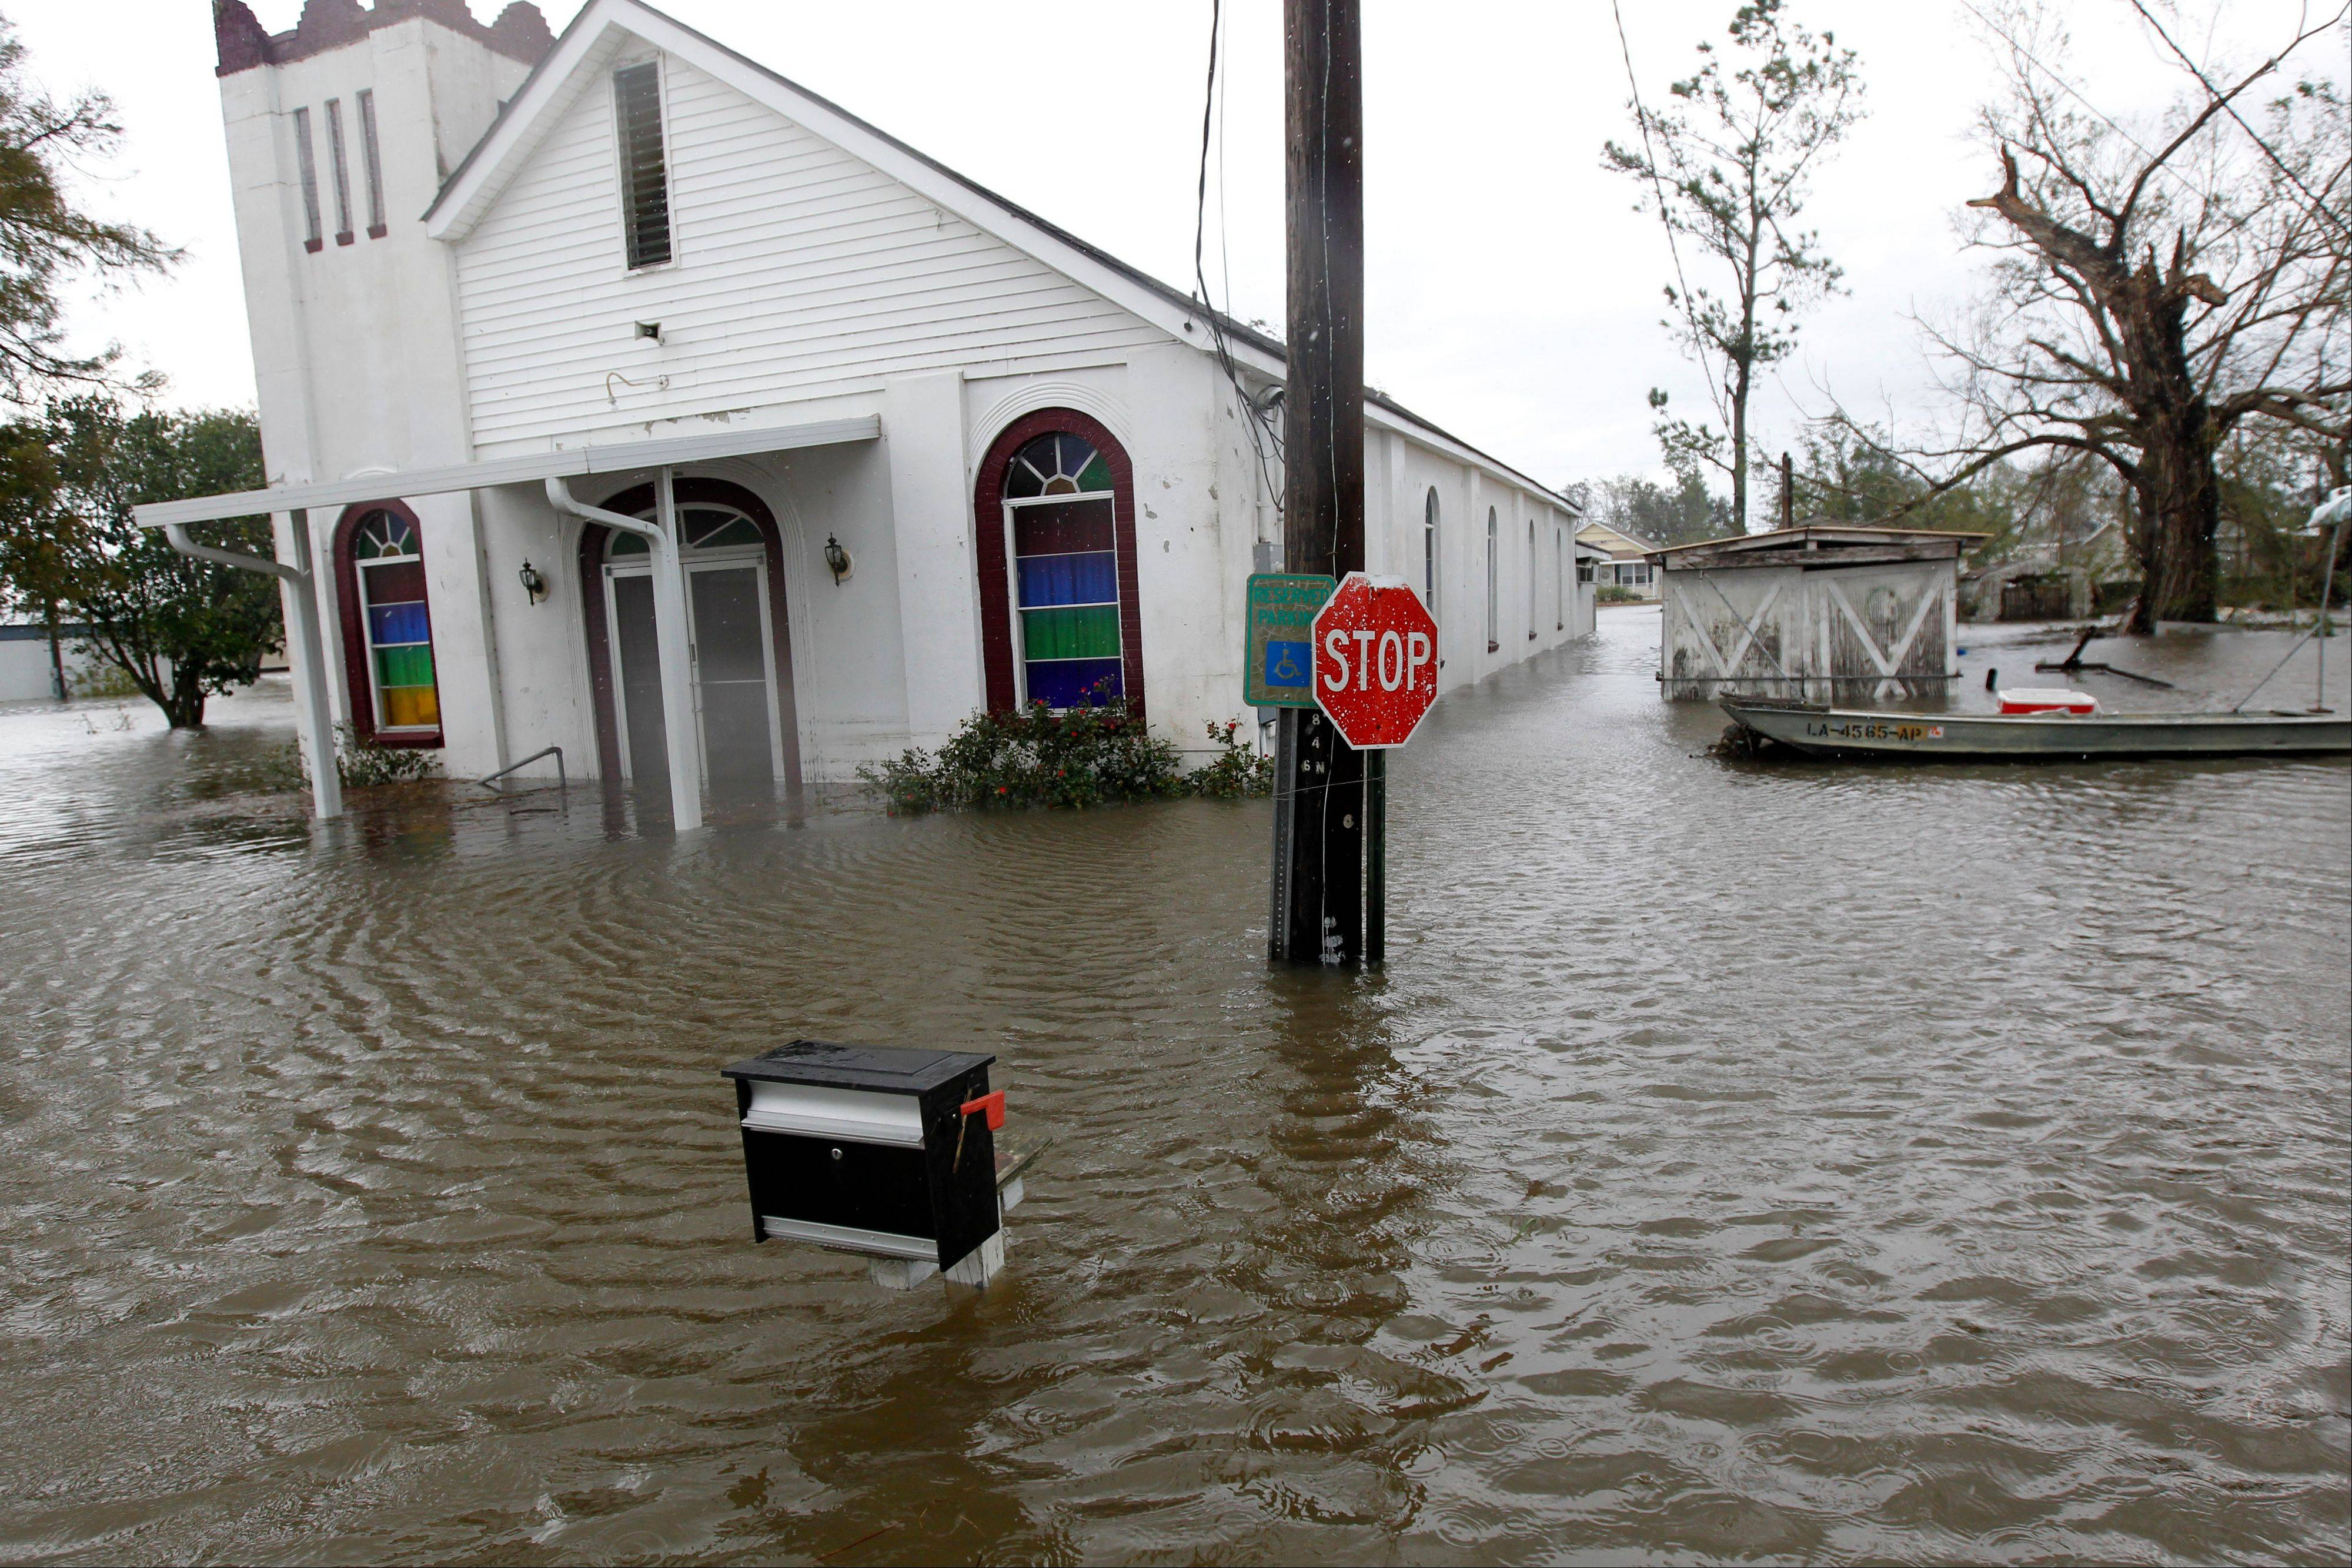 The St. Paul Missionary Baptist Church is seen flooded after Isaac passed through the region, in Plaquemines Parish, La., Thursday, Aug. 30, 2012.